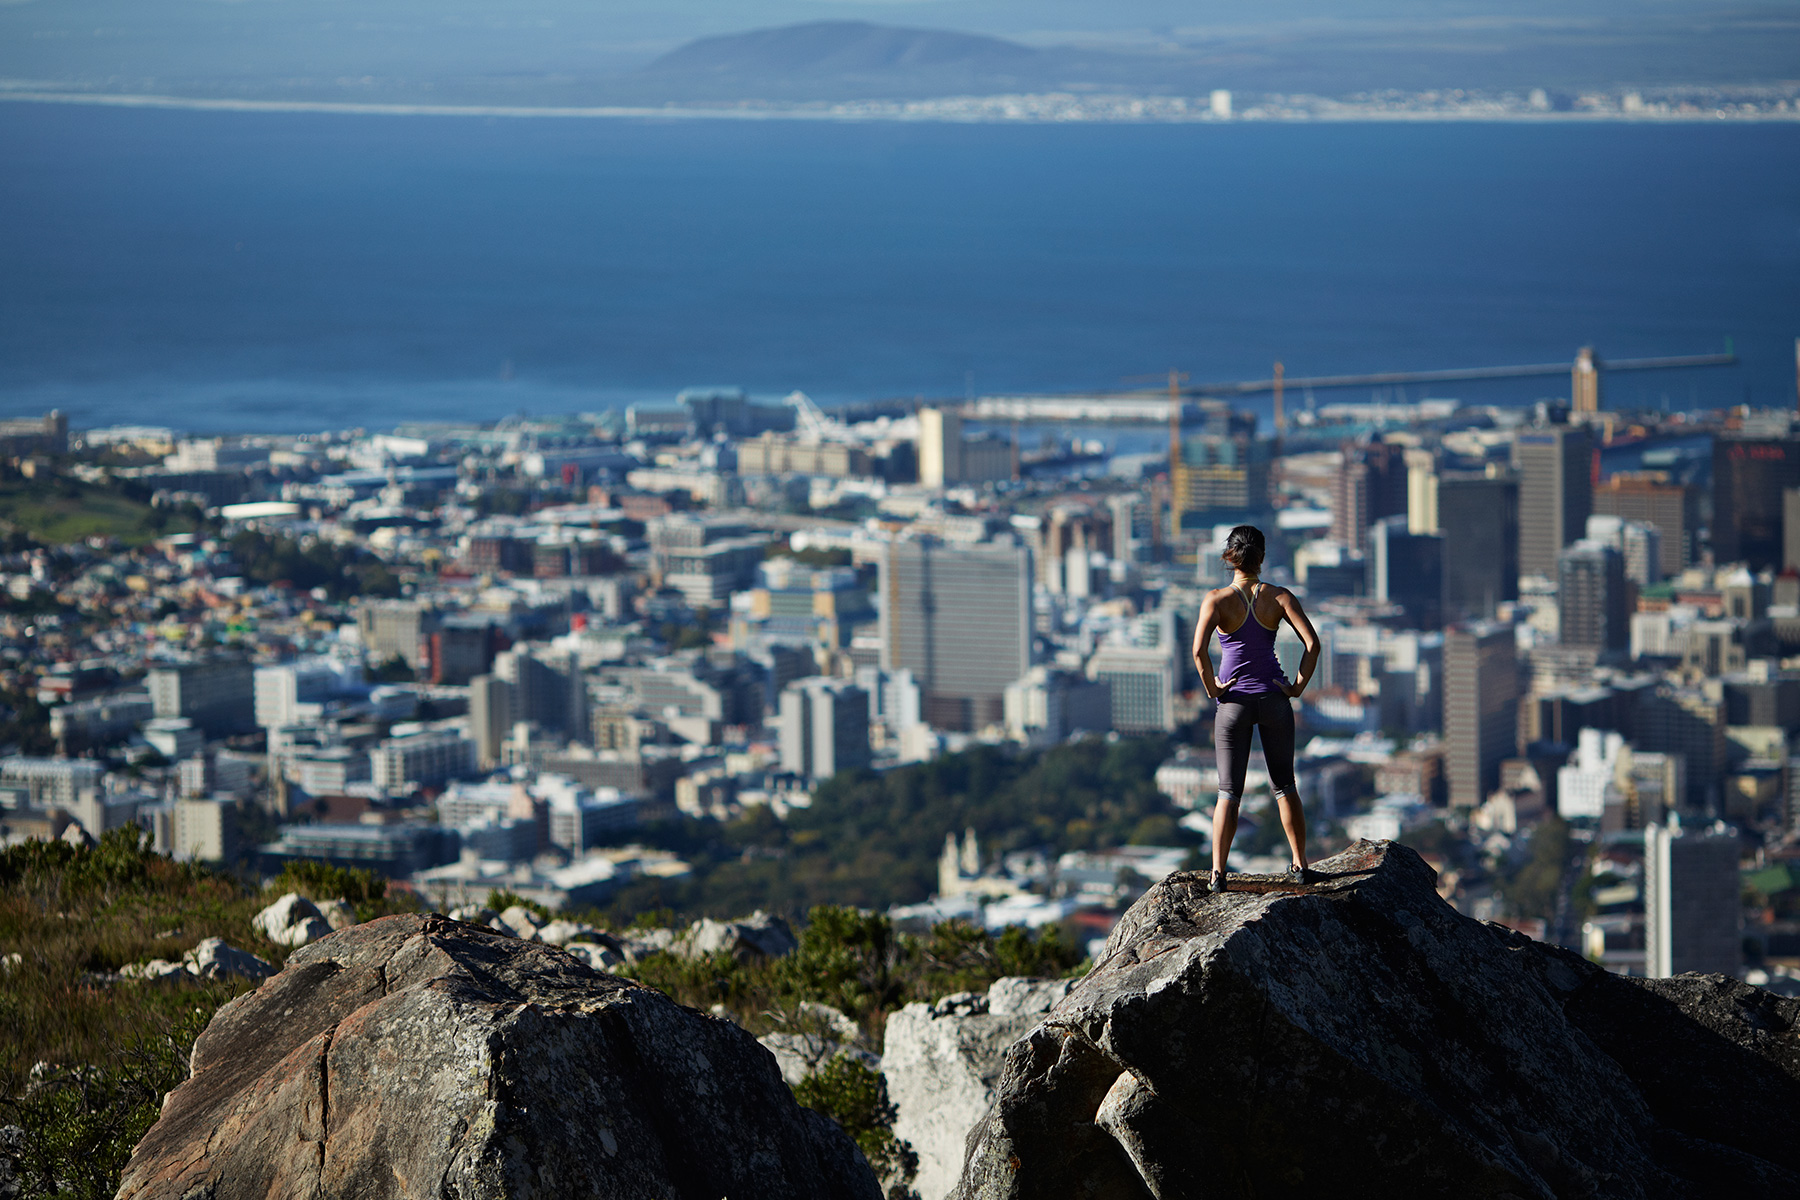 Female climber overlooking city, from top of mountain